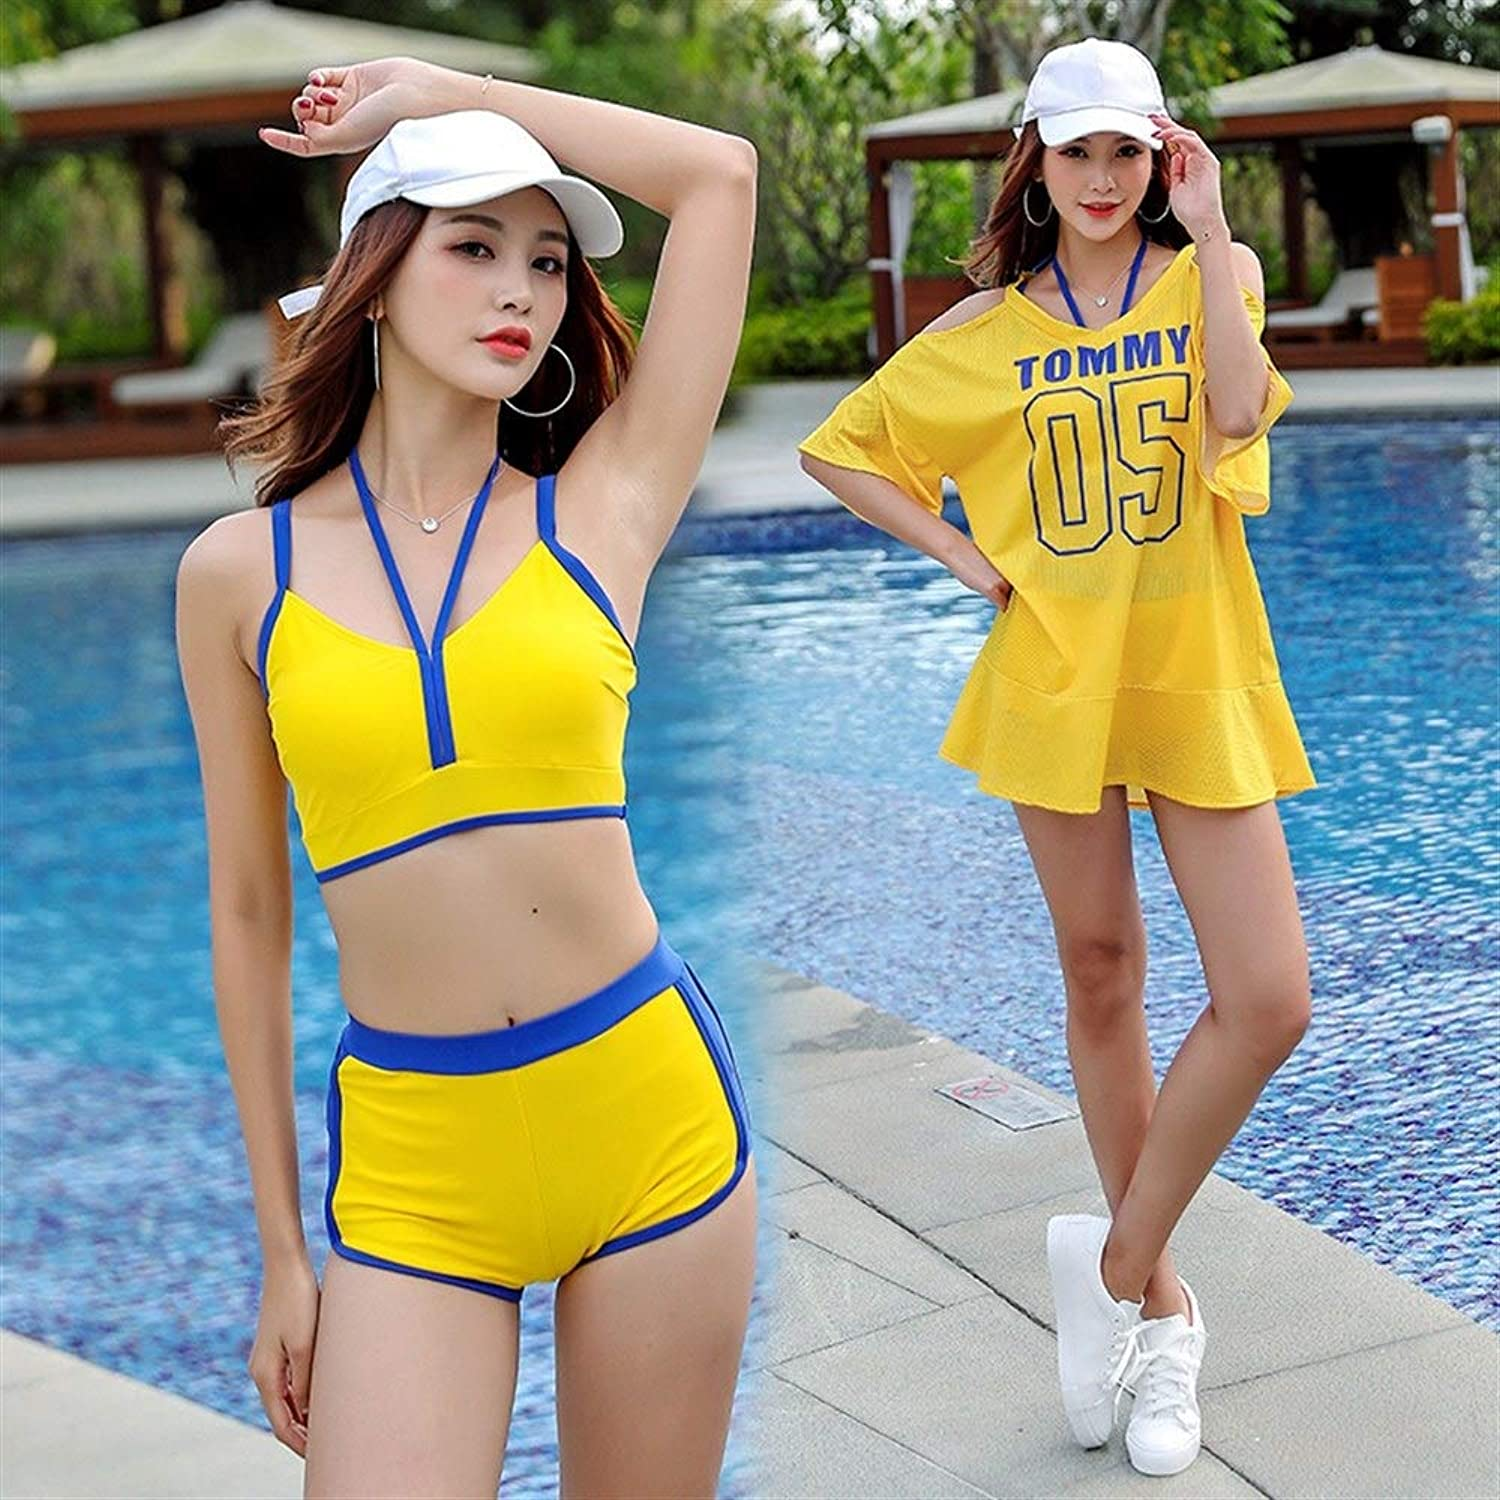 Swimsuit, New Swimwear Female Split Fashion Sports Swimwear Blouse Flat Angle hot Spring Swimsuit ThreePiece (color   Yellow, Size   L)